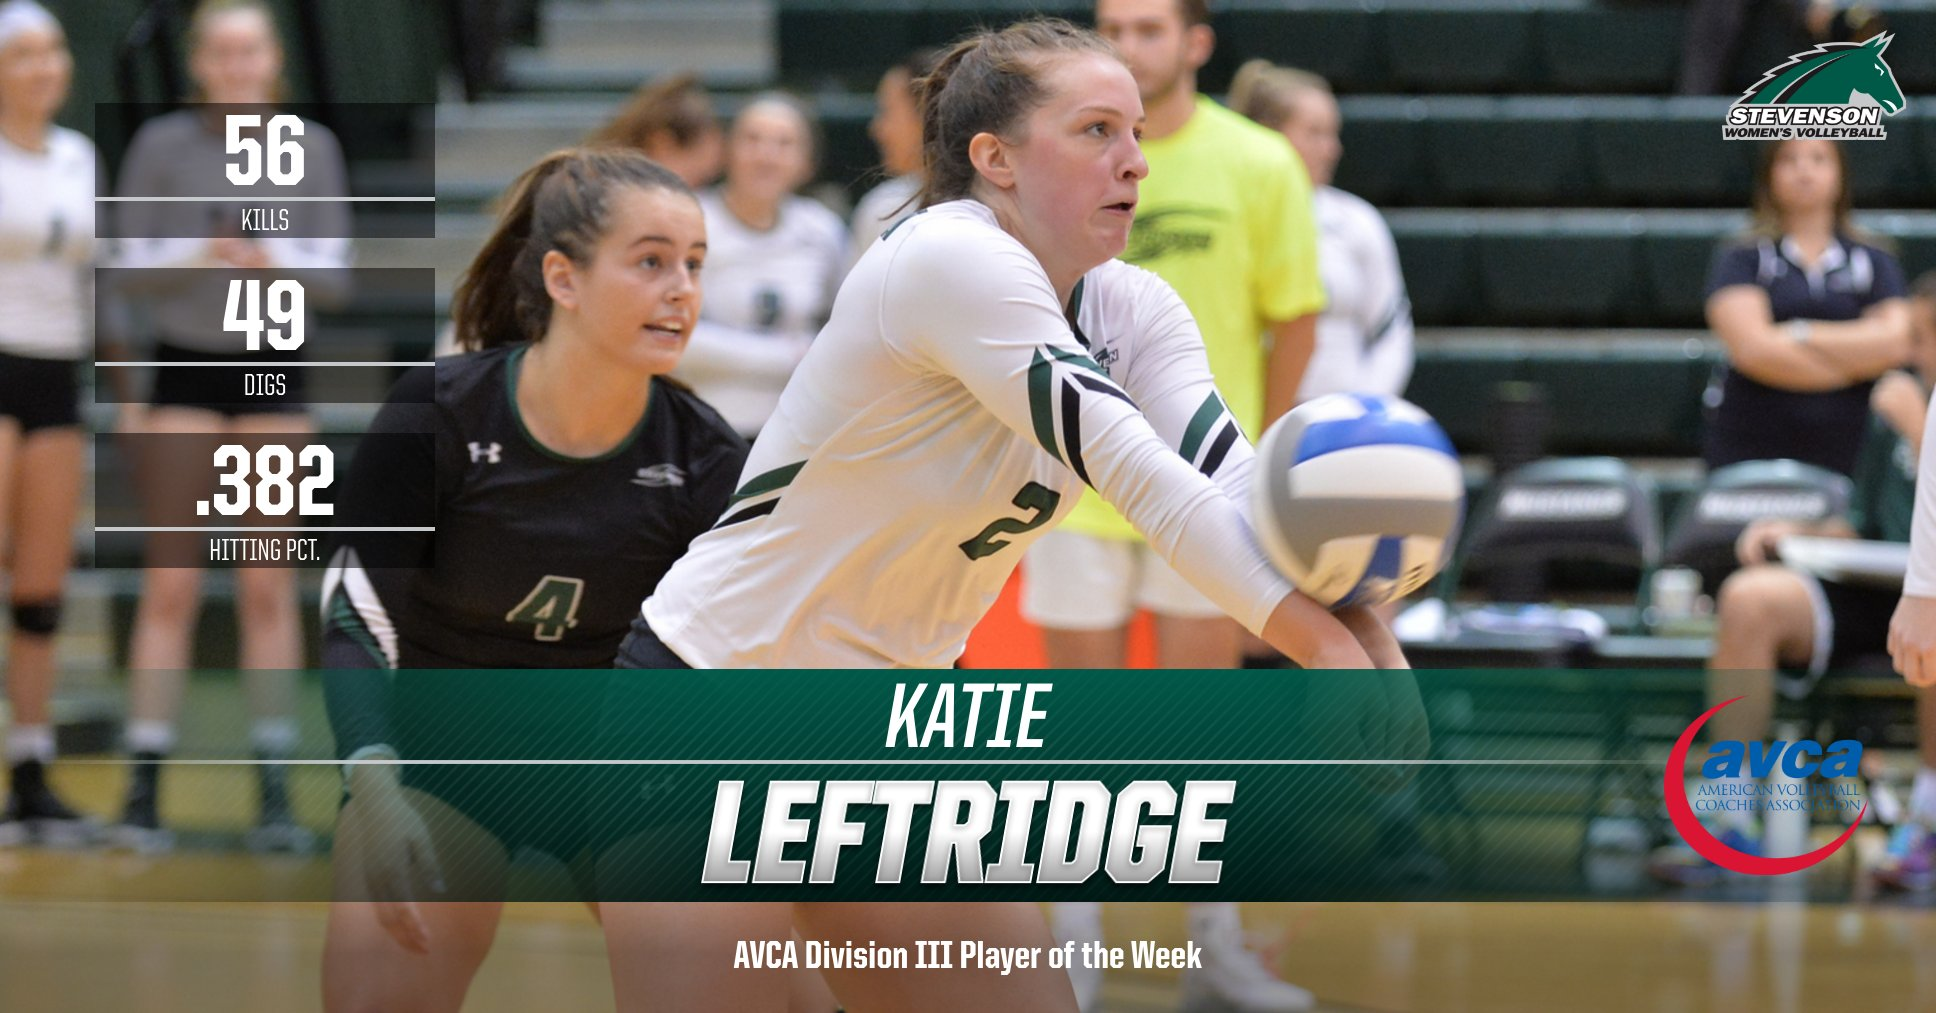 Katie Leftridge Named AVCA Division III Player of the Week